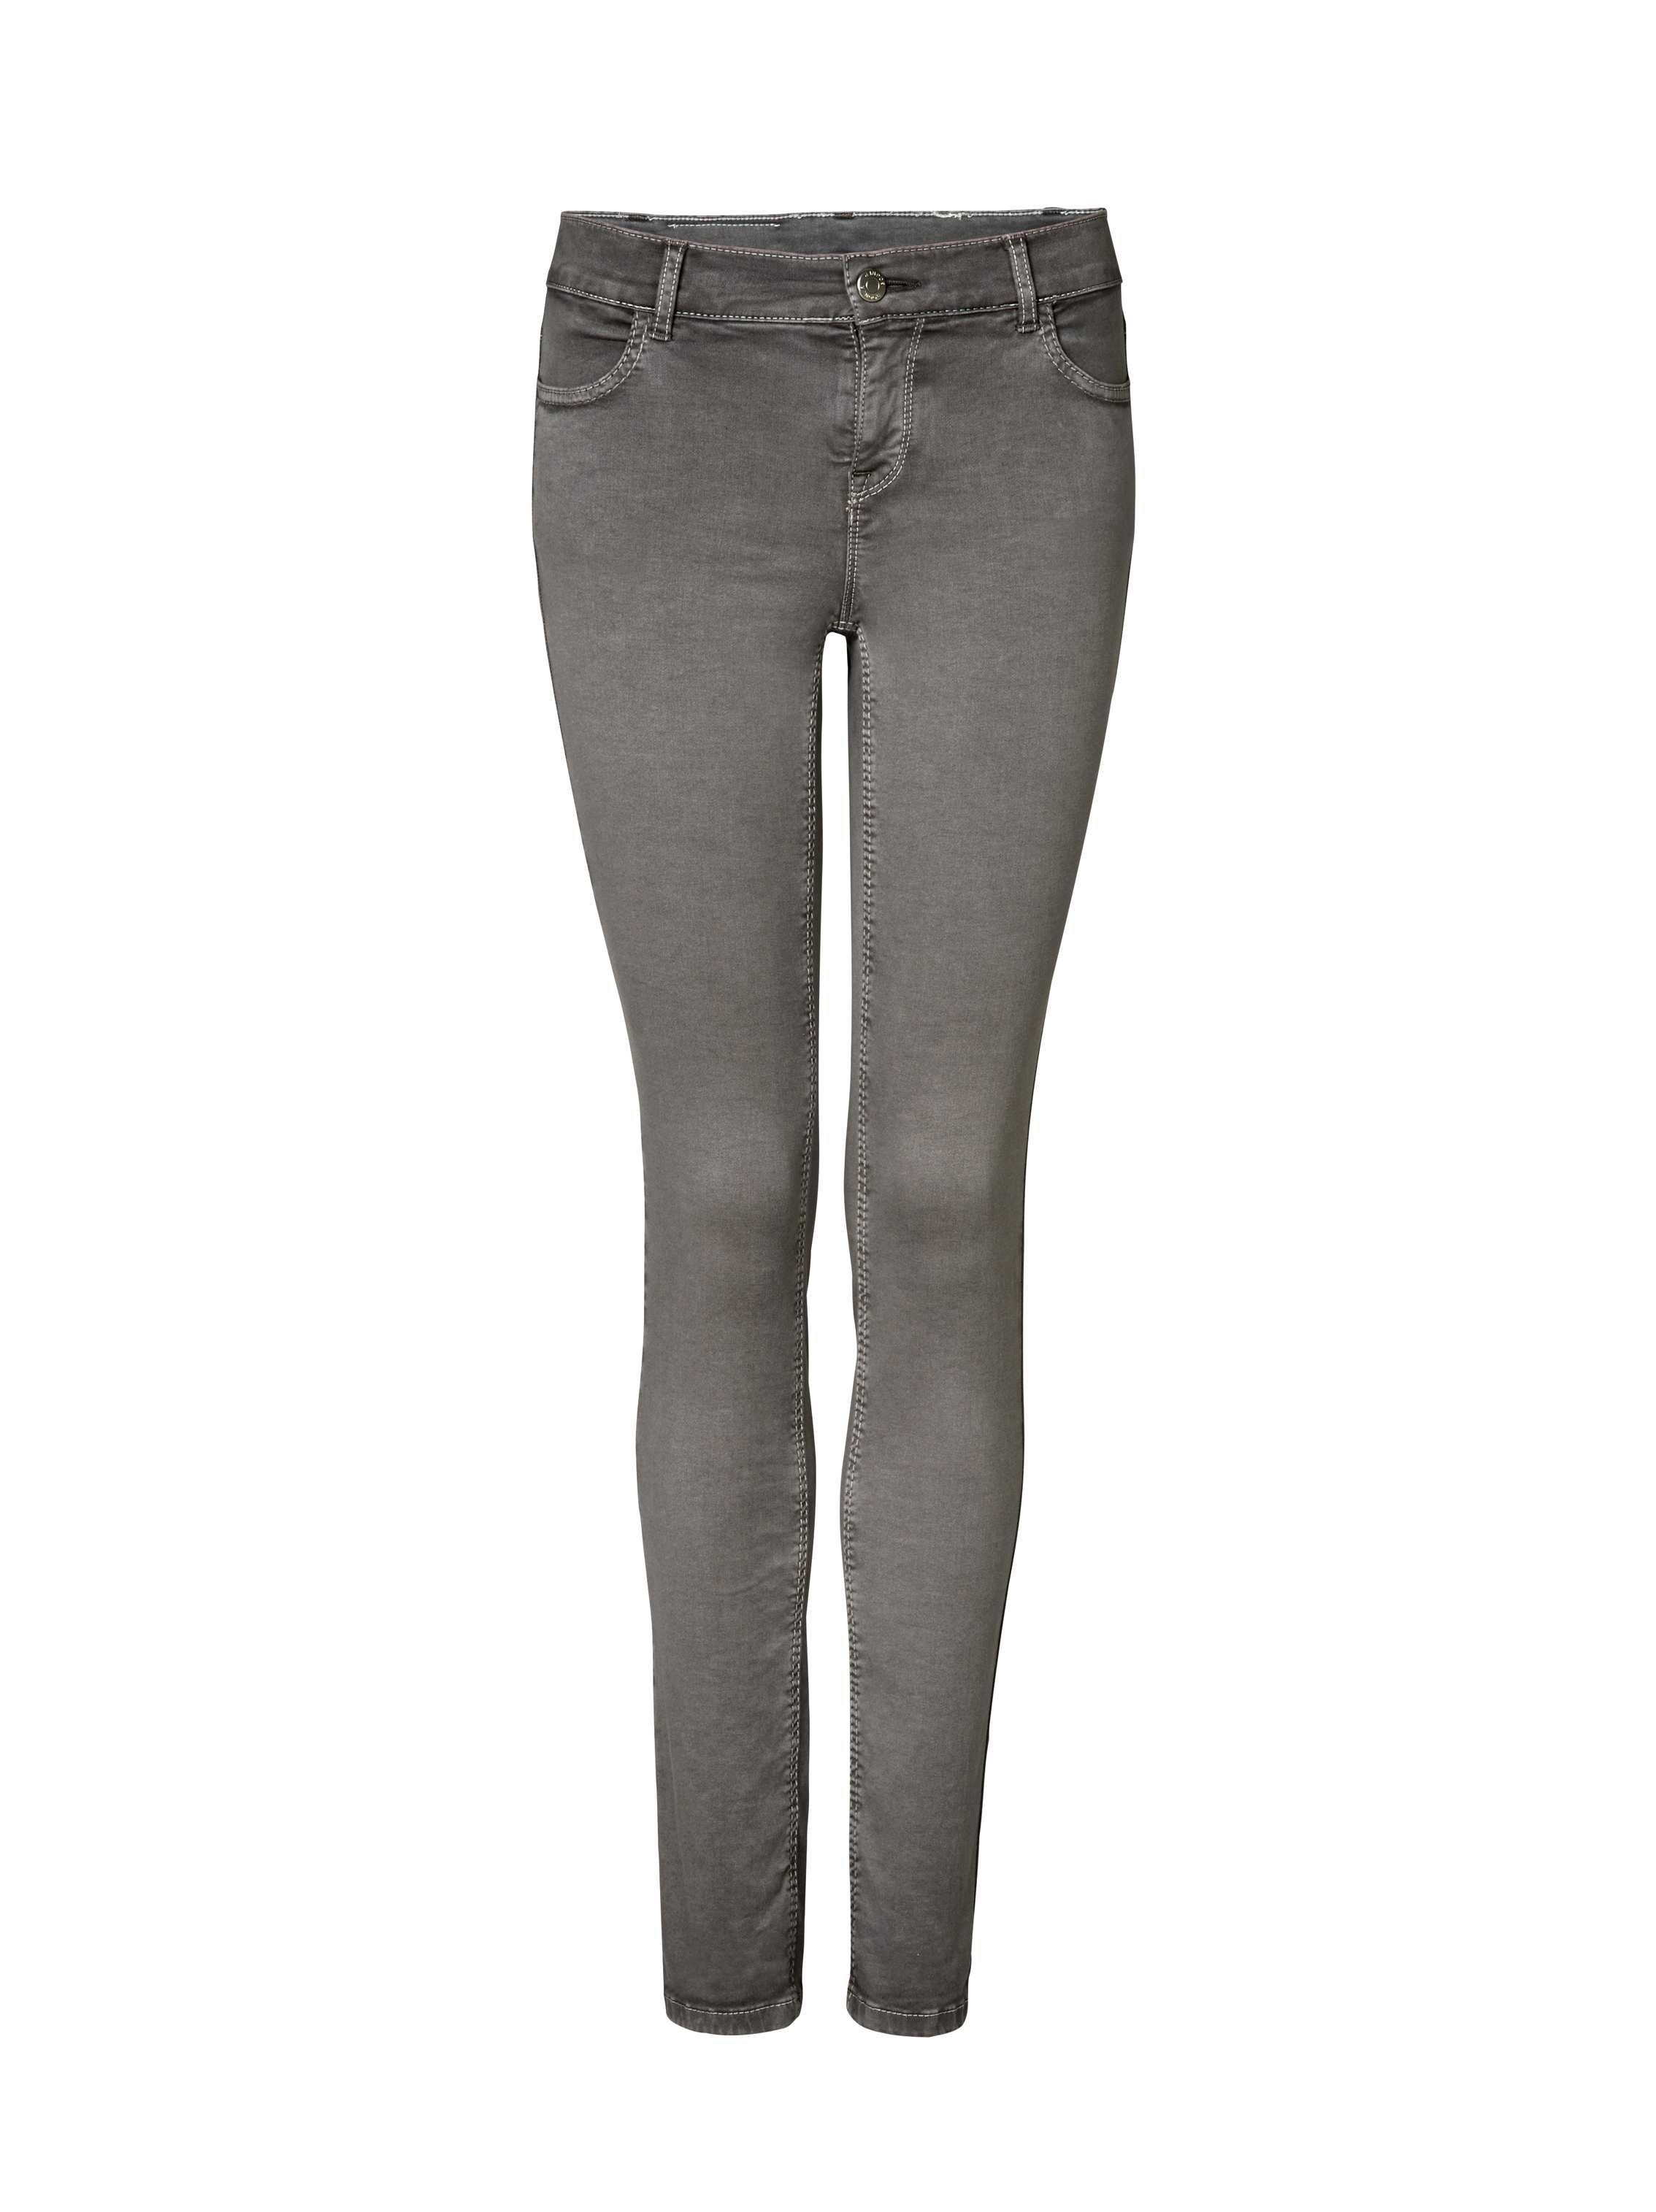 Skinny jeans Angy - Jeans - Pants / Jeans - Clothing - Ladies | BOGNER.COM